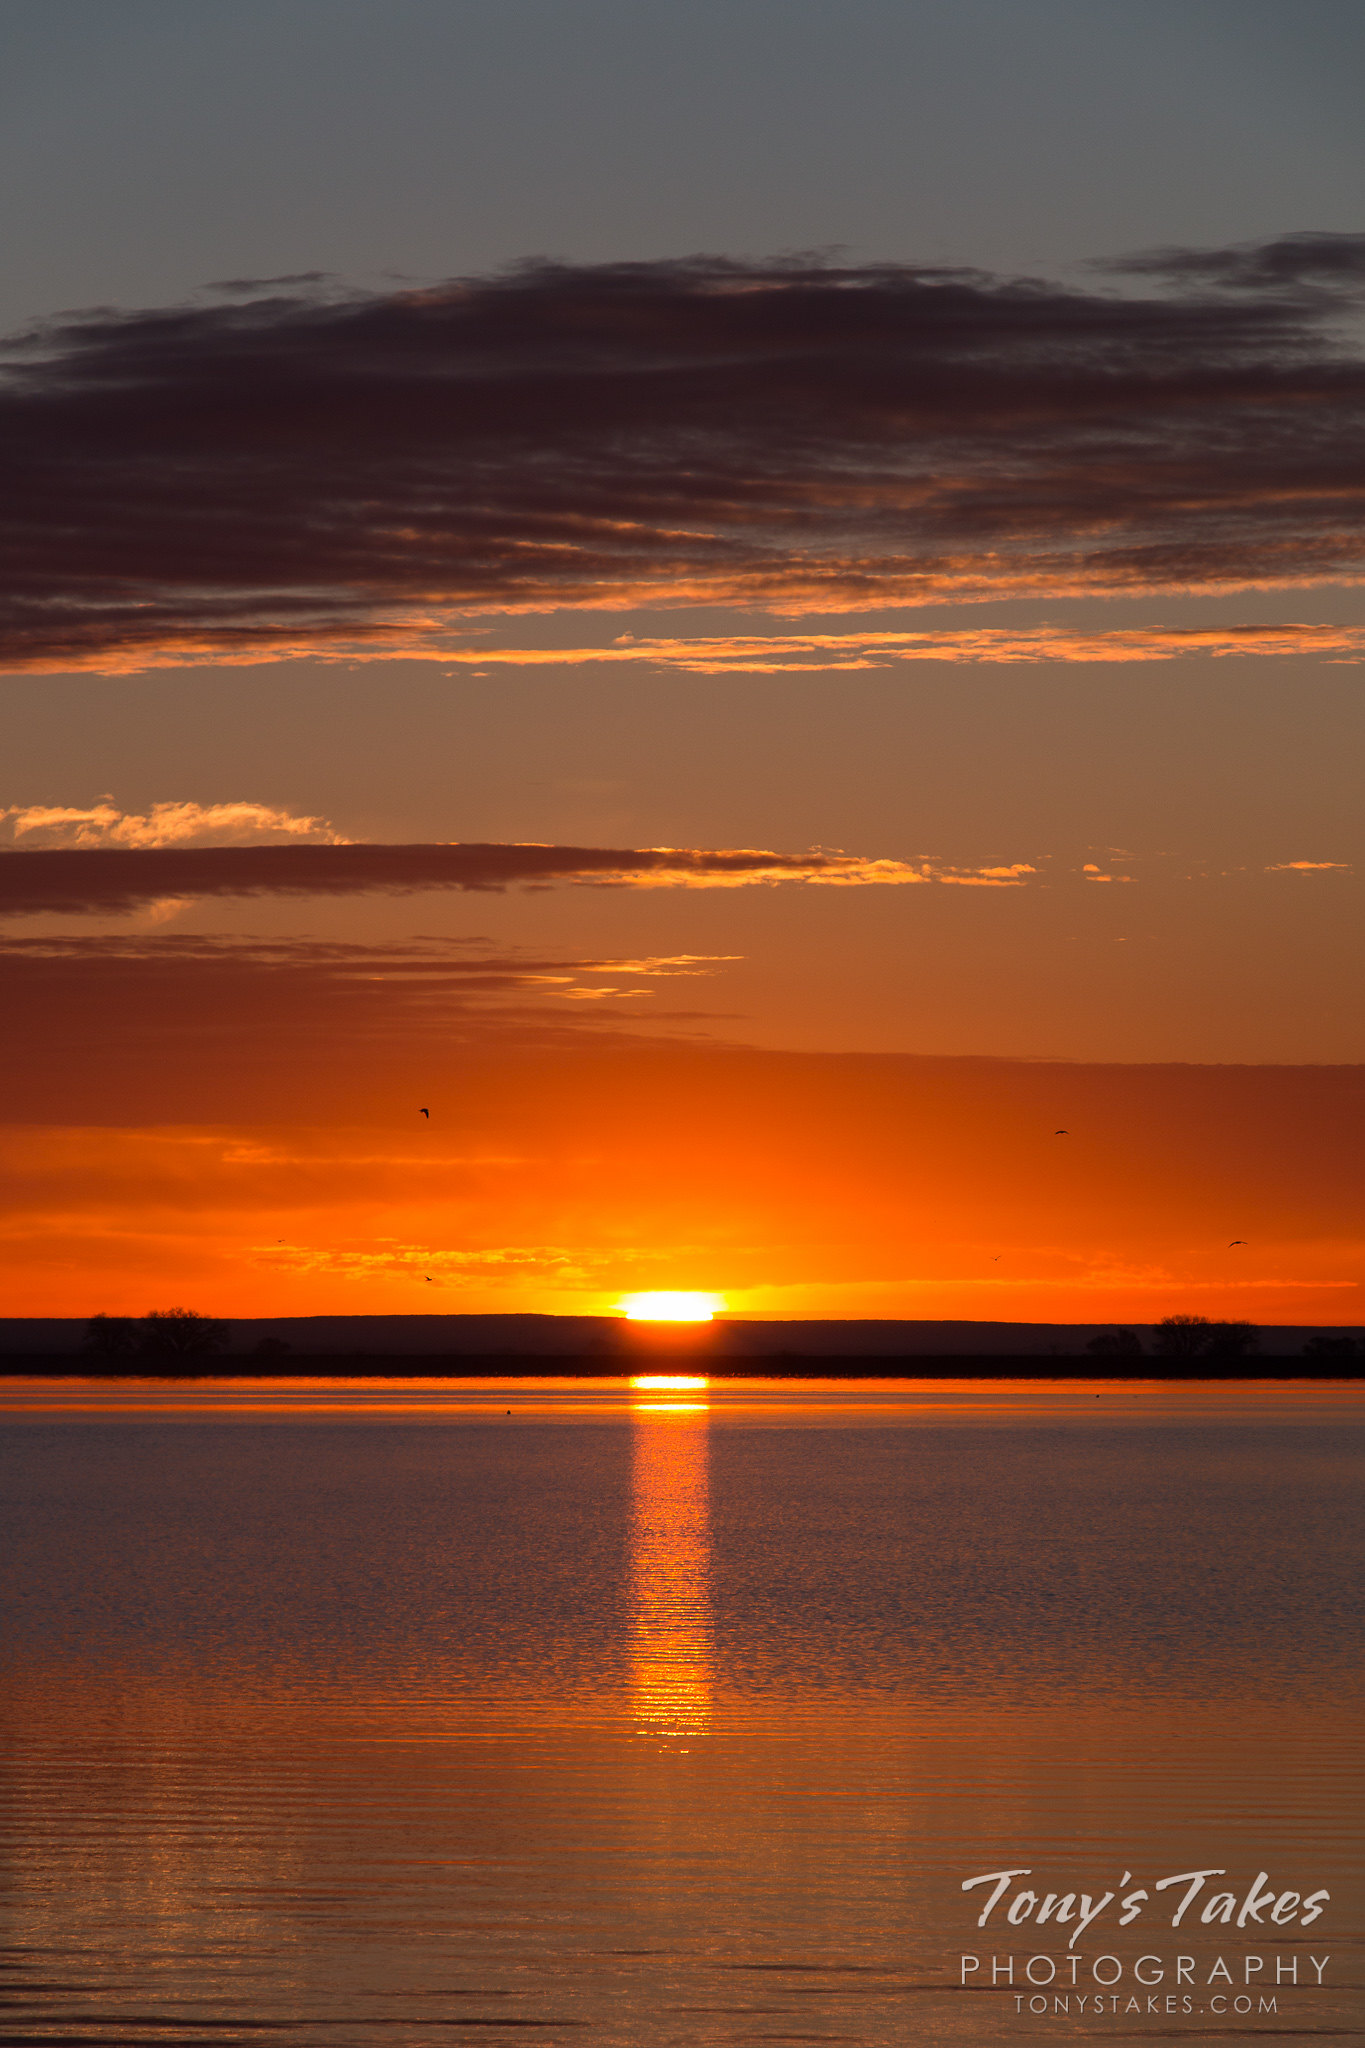 A brilliantly lit sunrise on the Colorado plains. (© Tony's Takes)